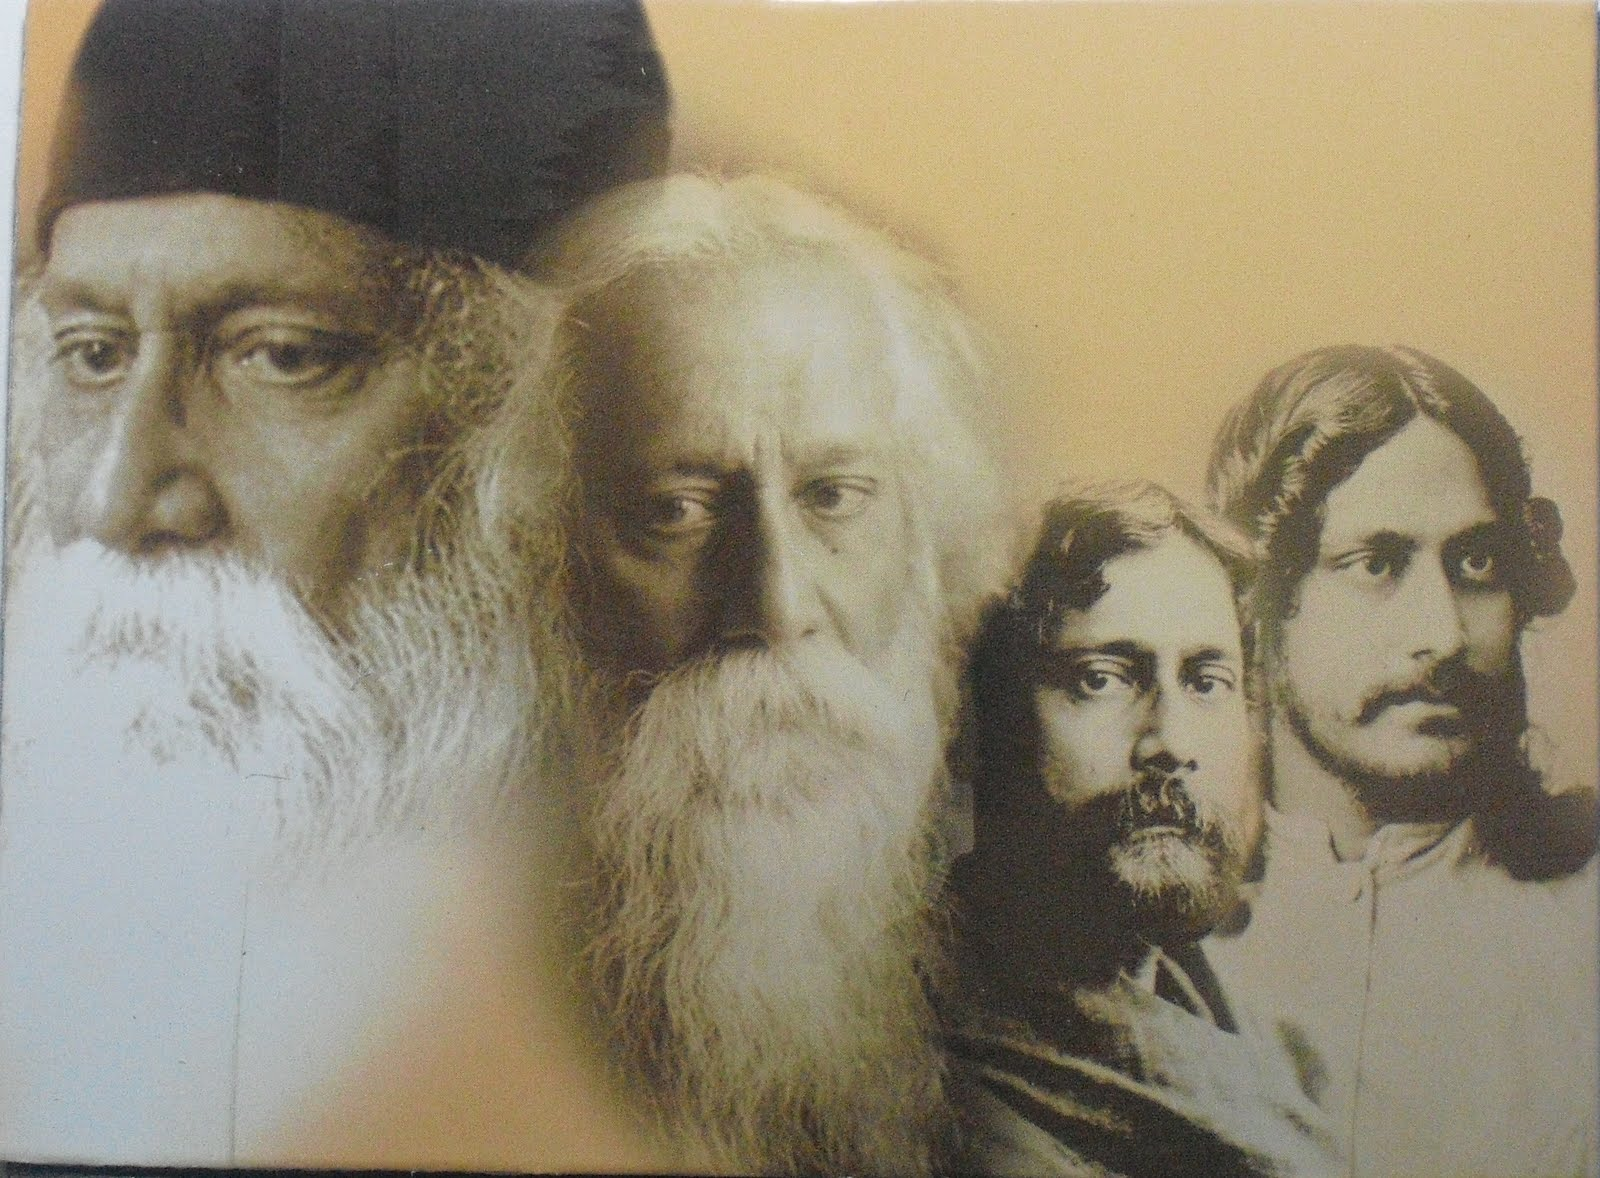 essay of rabindranath tagore rabindranath tagore painter author  my coin collection proof set th birth anniversary of proof set 150th birth anniversary of rabindranath picture gallery rabindranath tagore paintings